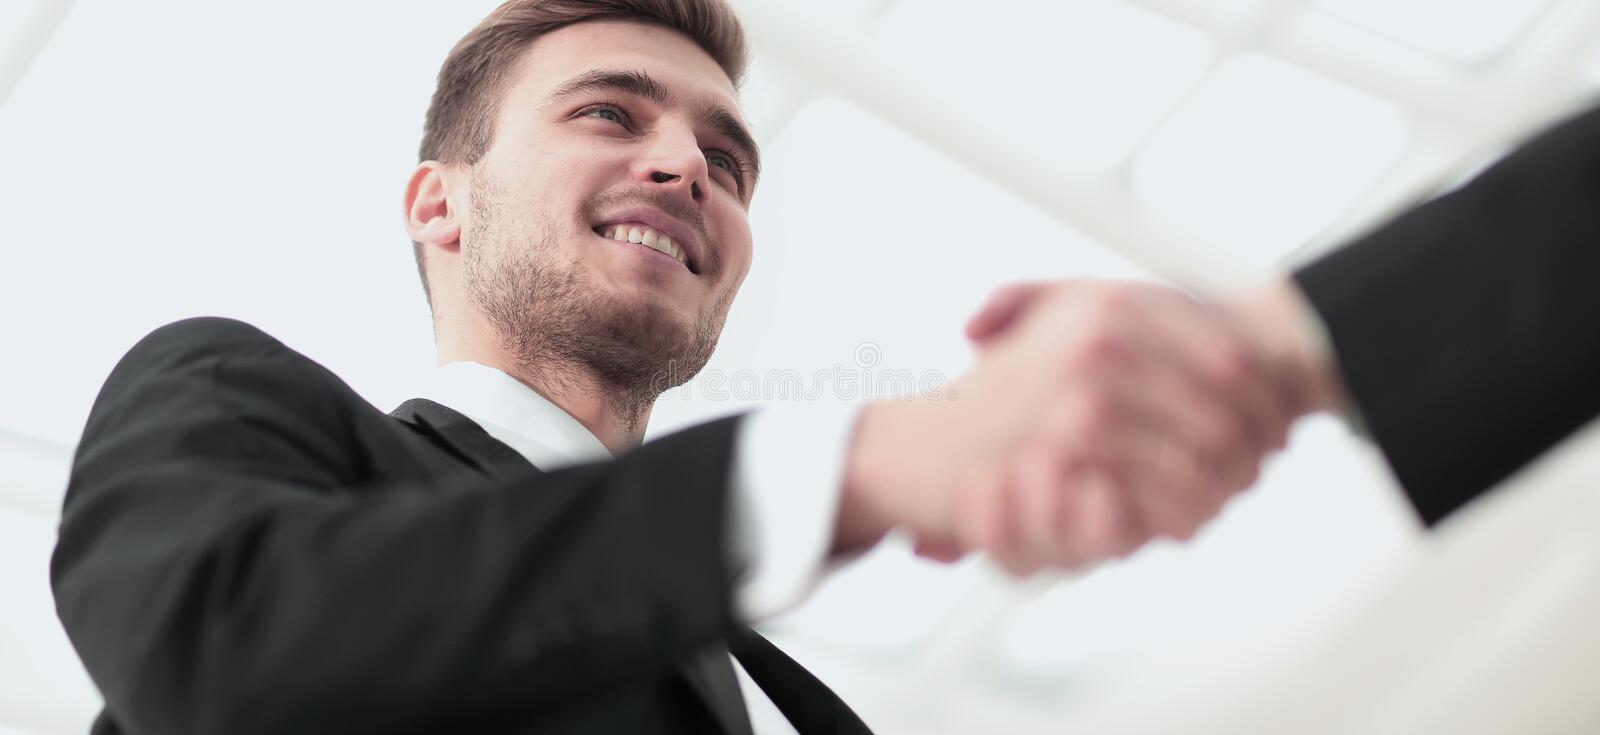 Closeup of handshake as a sign of successful cooperation and int stock photography